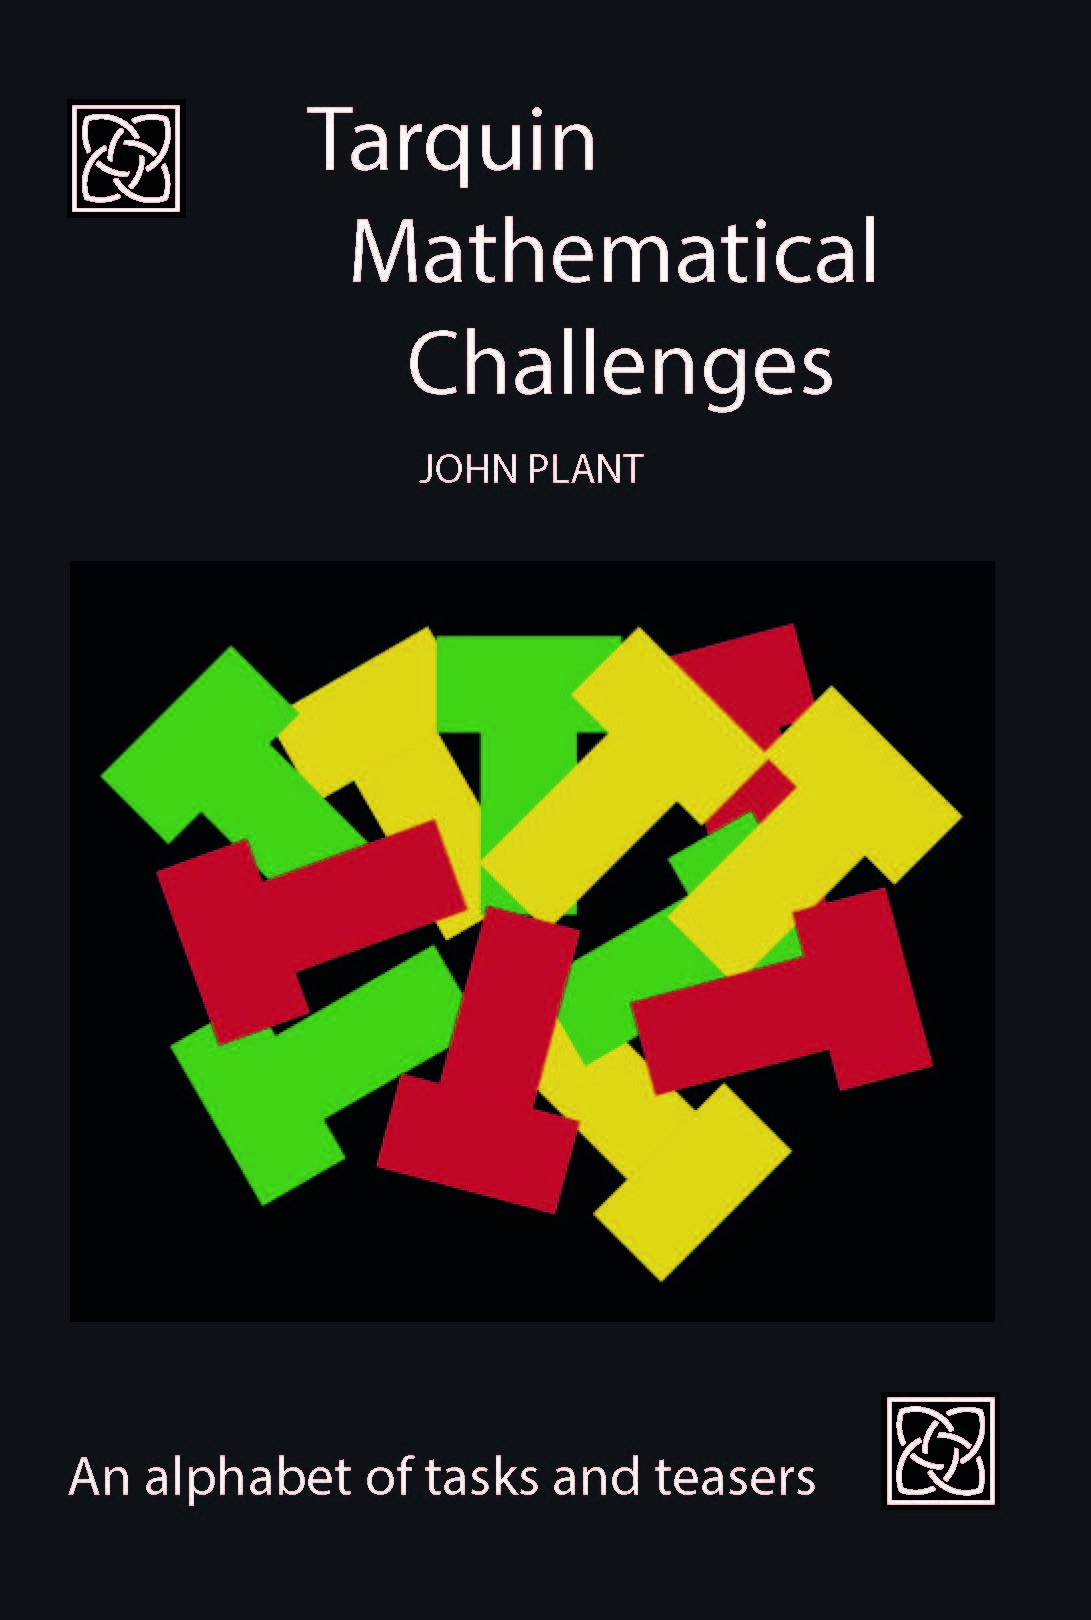 Tarquin Mathematical Challenges